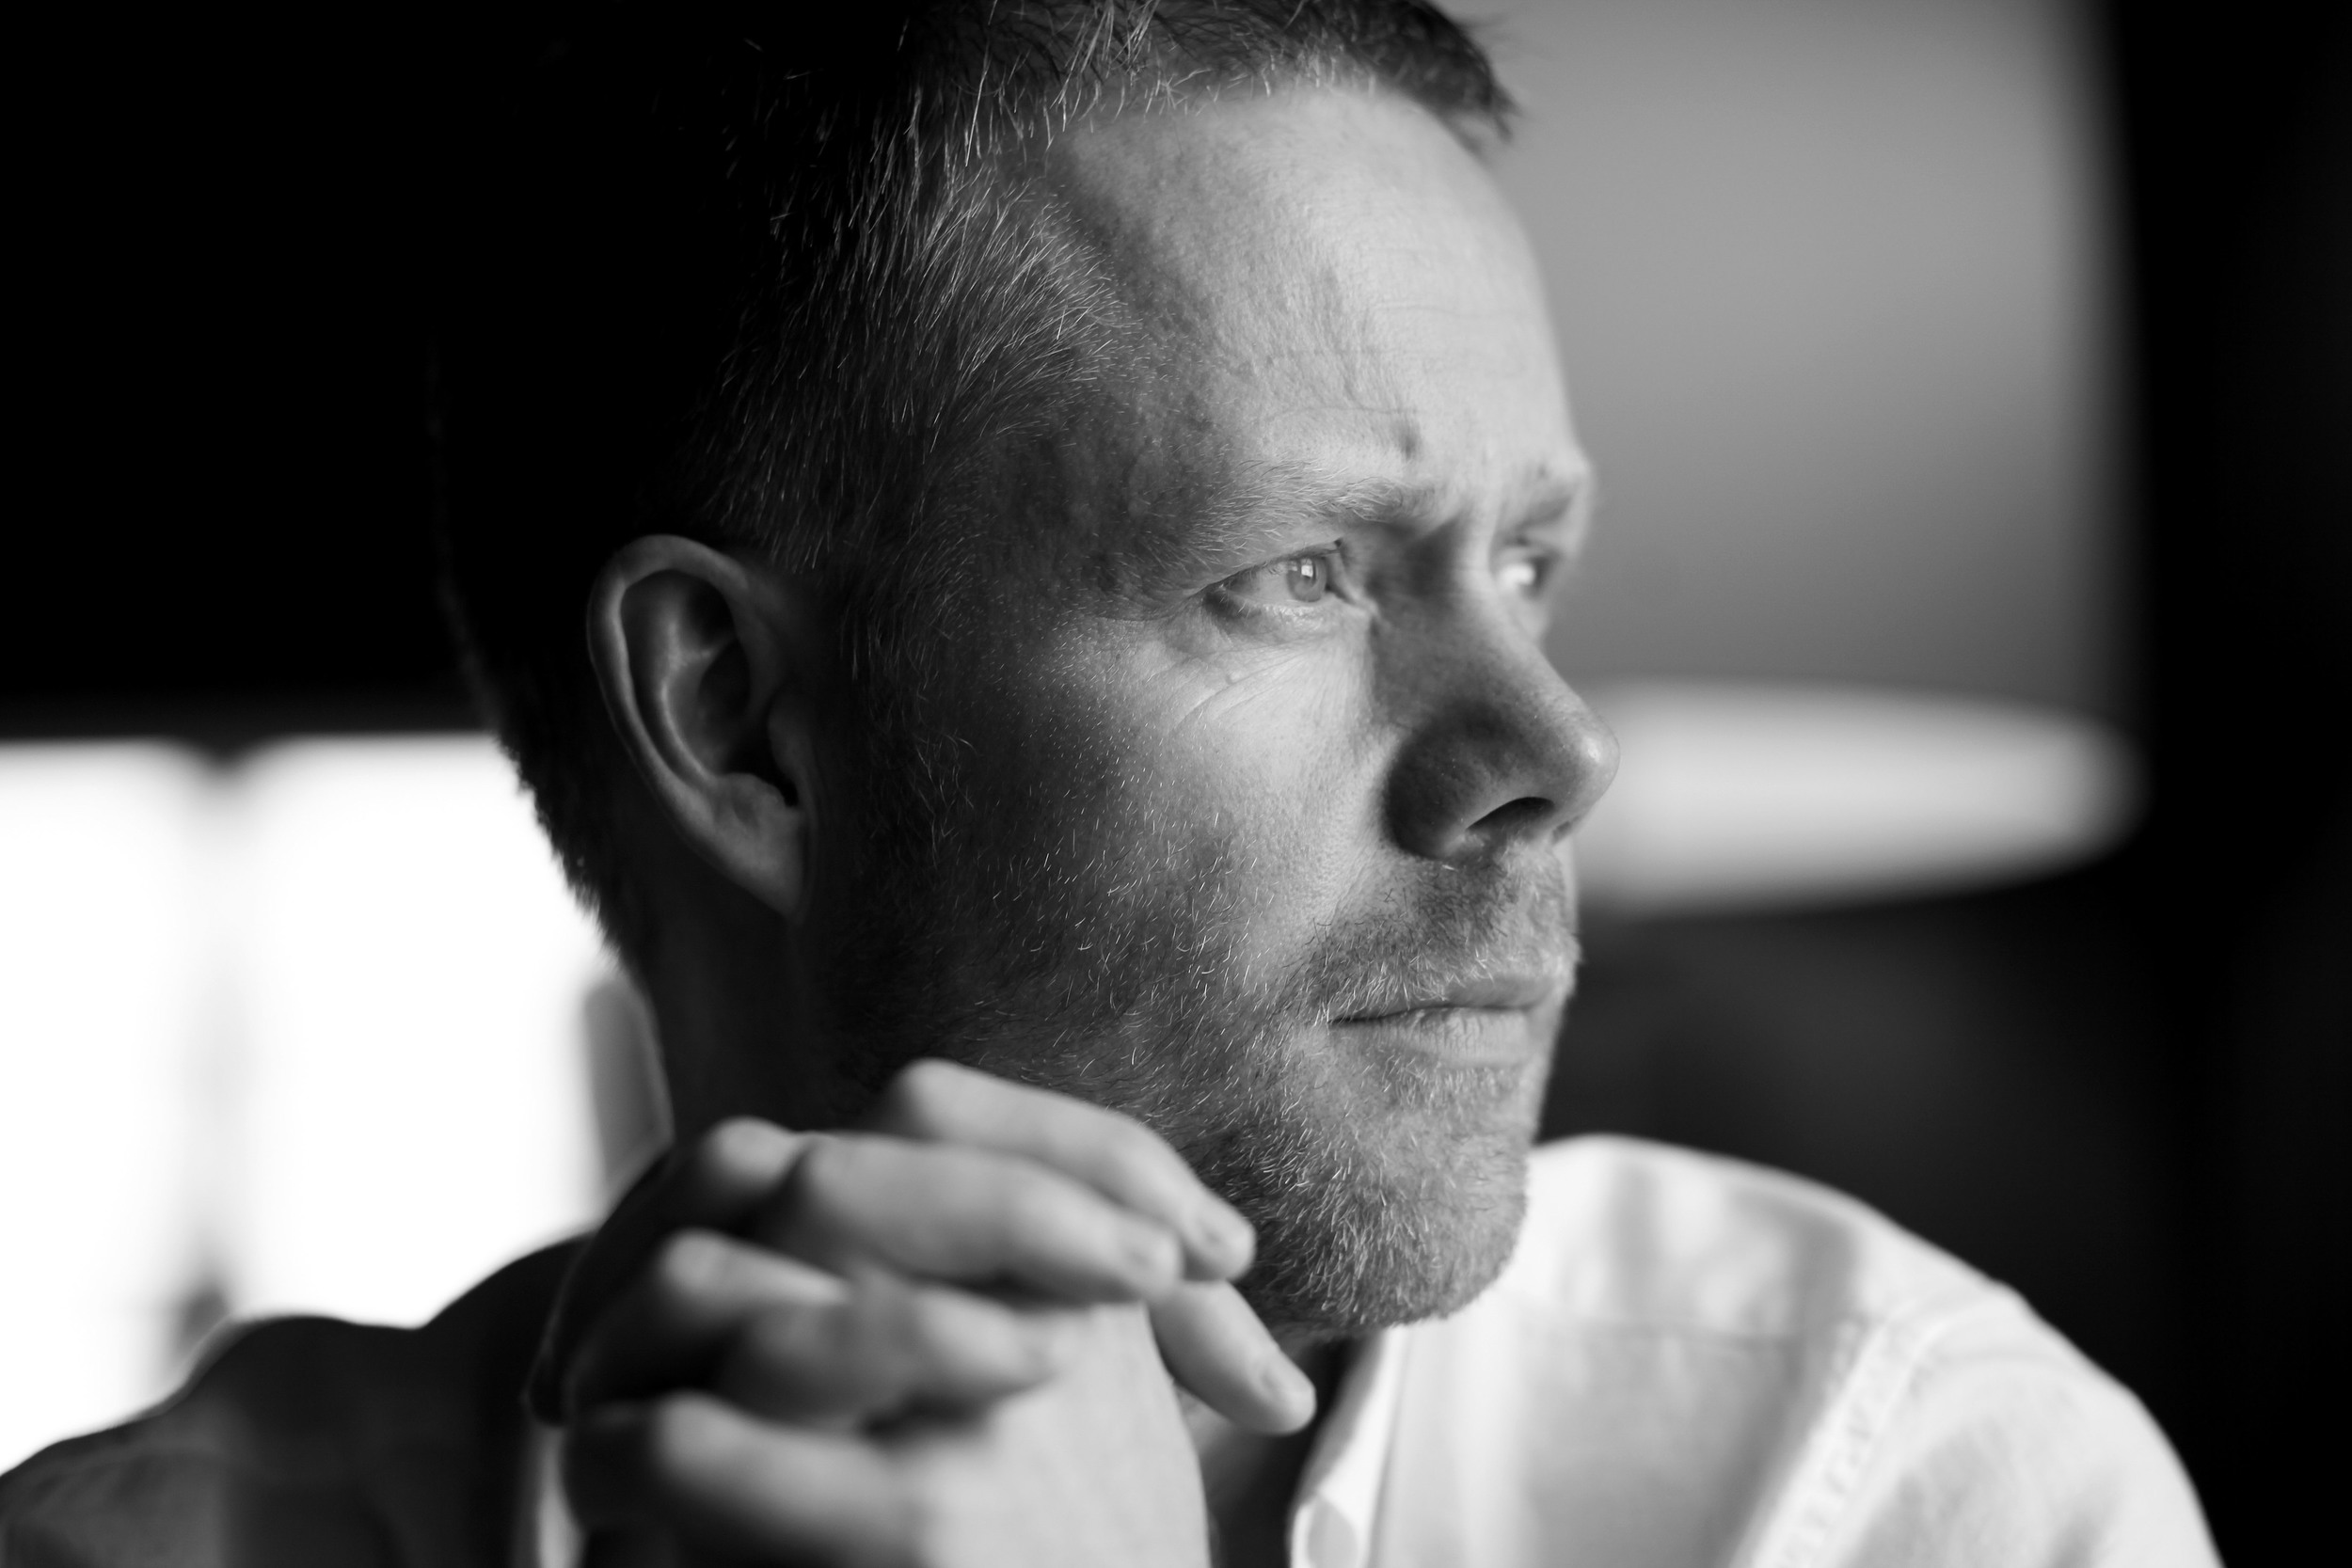 Max Richter, photograph by Yulia Mahr